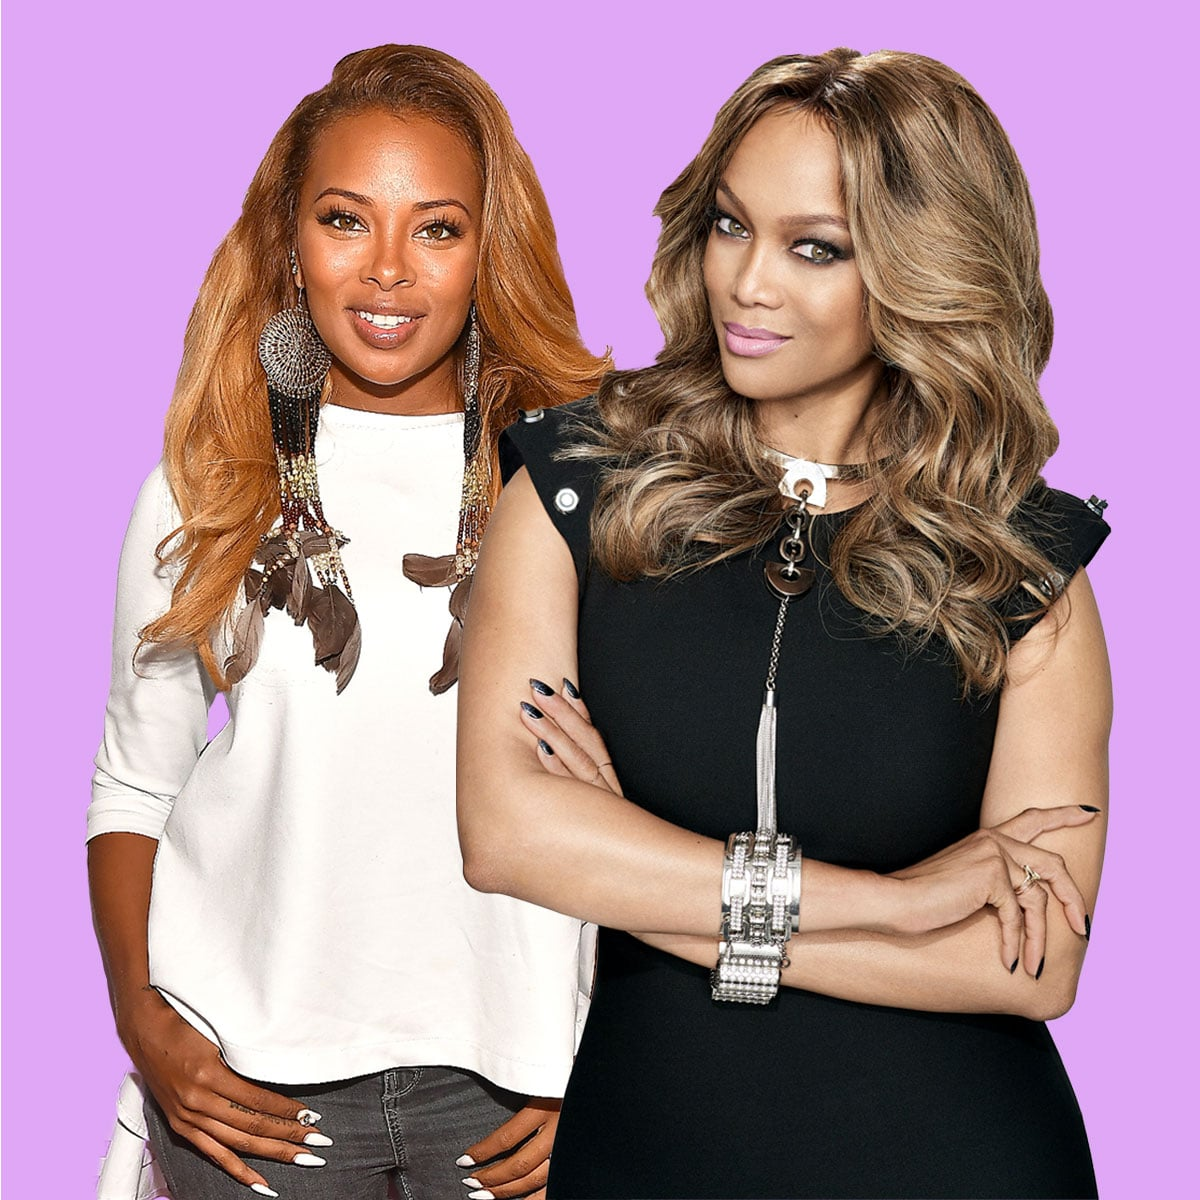 Tyra Banks Now: Eva Marcille's Sweet Birthday Message To Tyra Banks Will